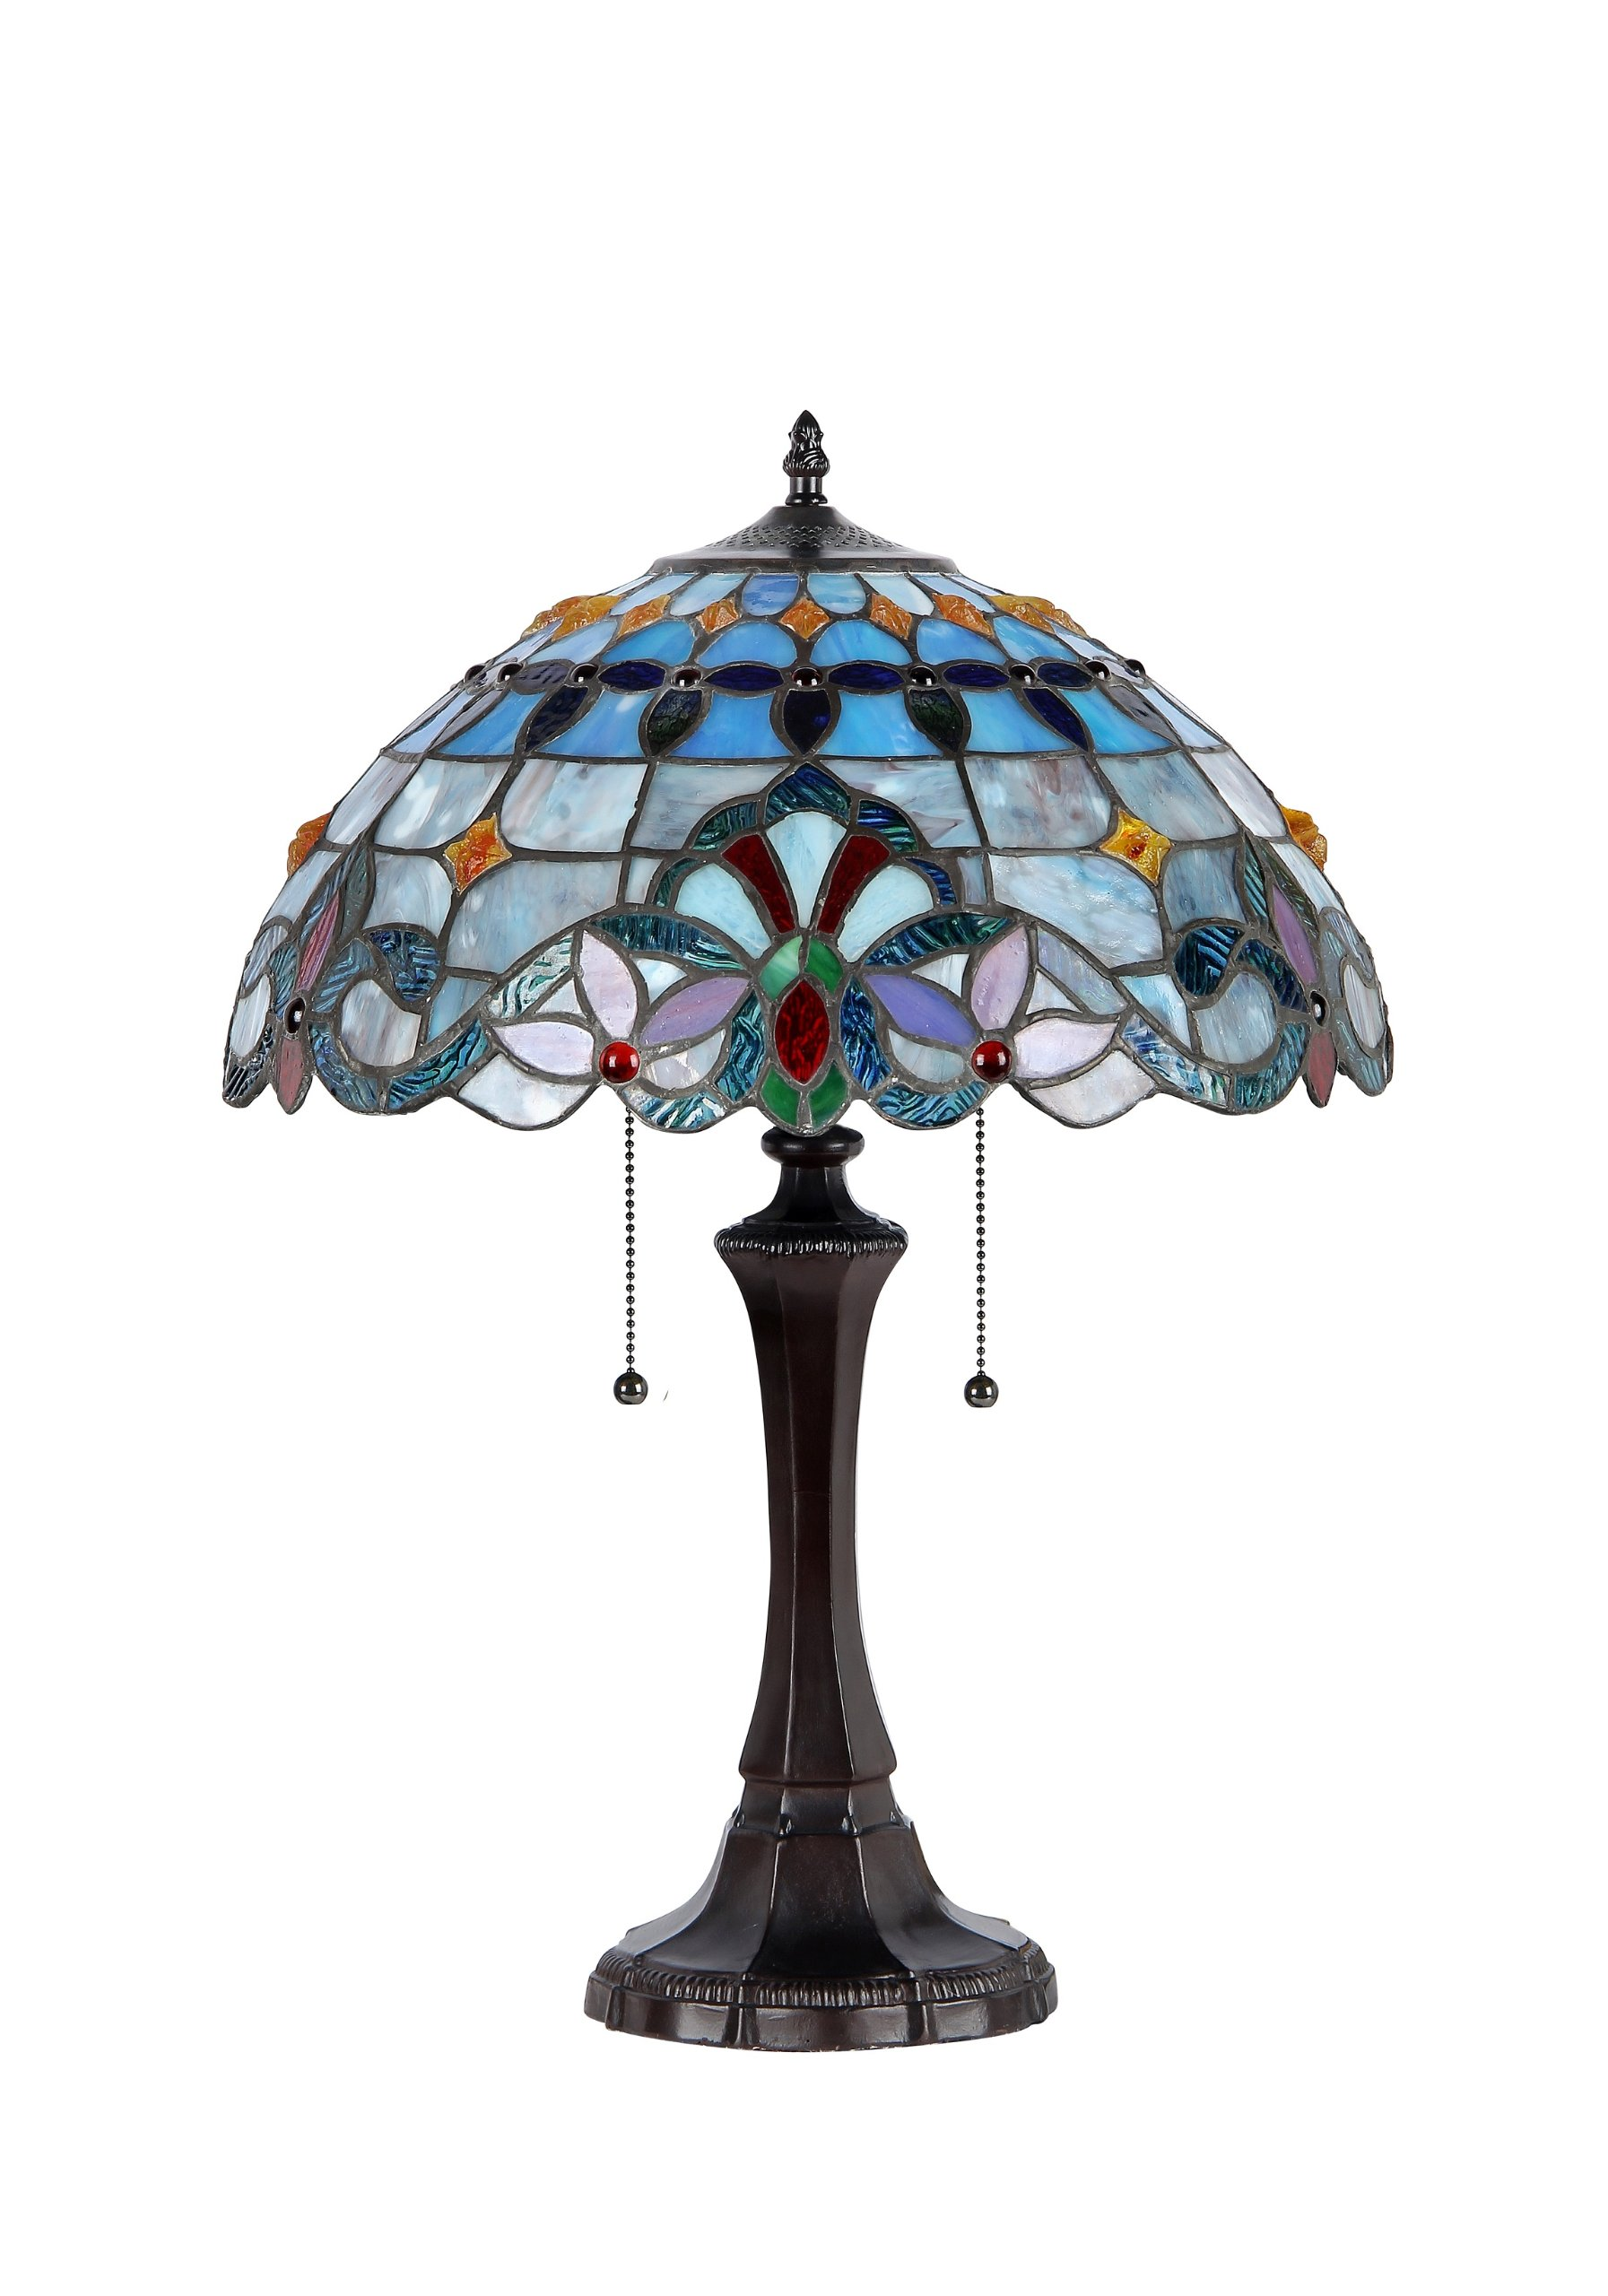 Chloe Lighting CH33381VB16-TL2  Grenville Tiffany-Style Victorian 2 Light Table Lamp 16-Inch Shade by Chloe Lighting